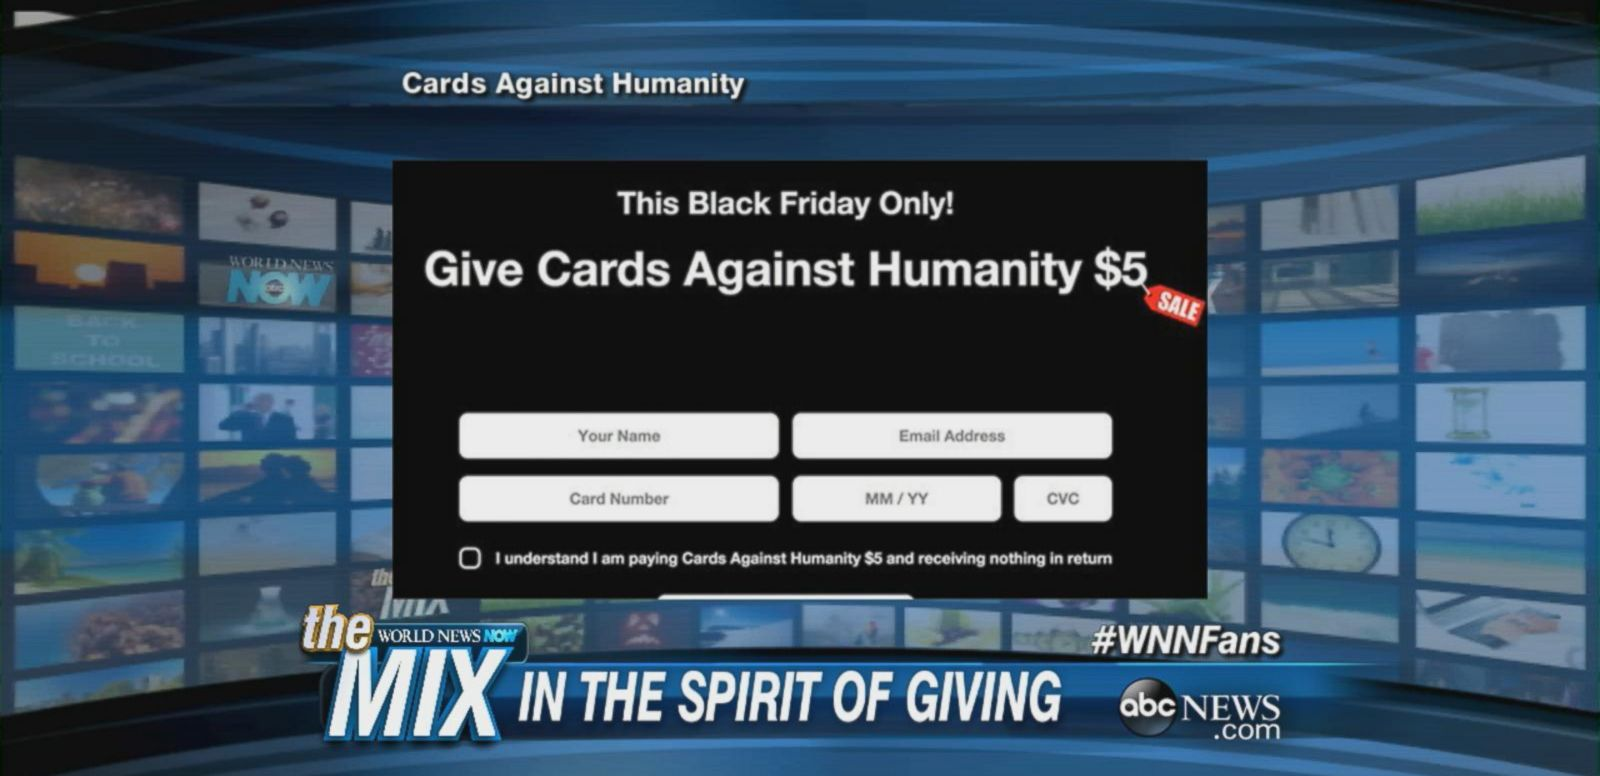 VIDEO: 'Cards Against Humanity' Has a Profitable Black Friday